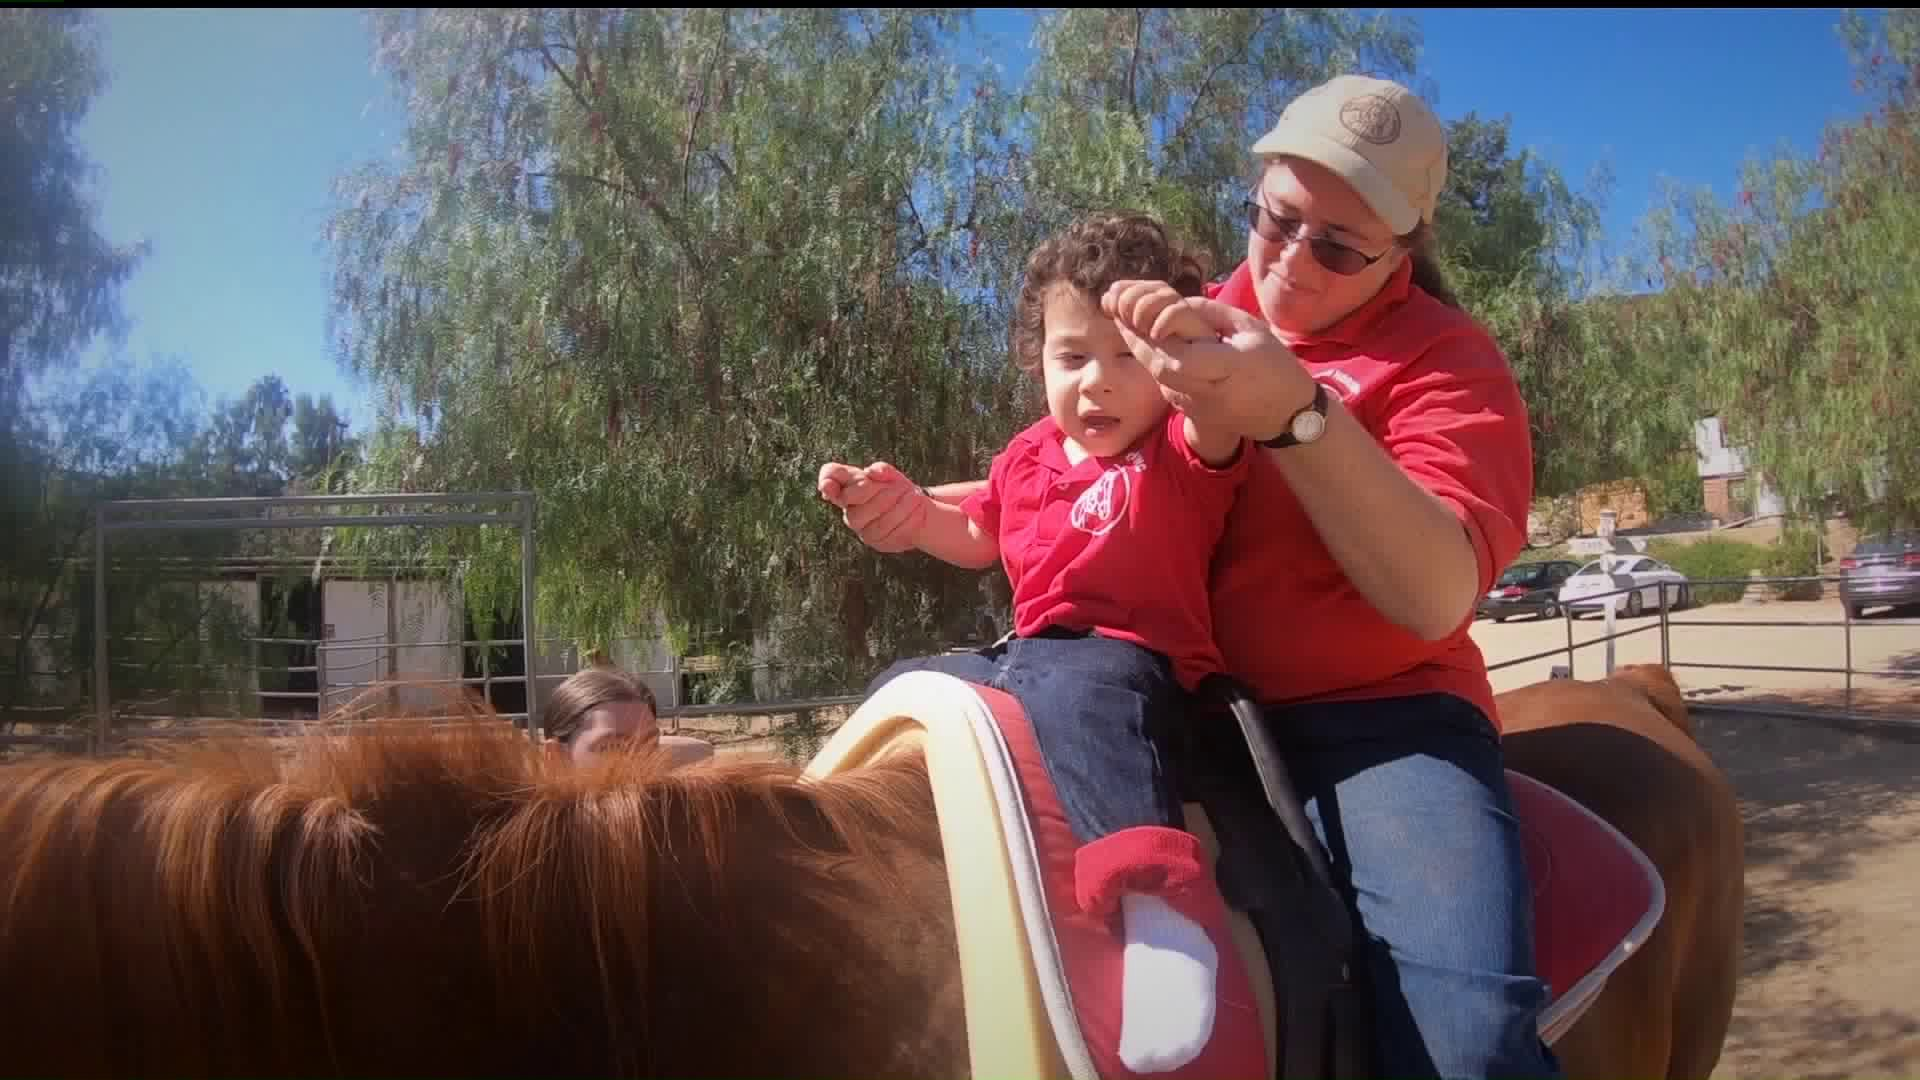 A young patient receives equine therapy at Ahead with Horses in Shadow Hills on Oct. 3, 2019. (Credit: KTLA)